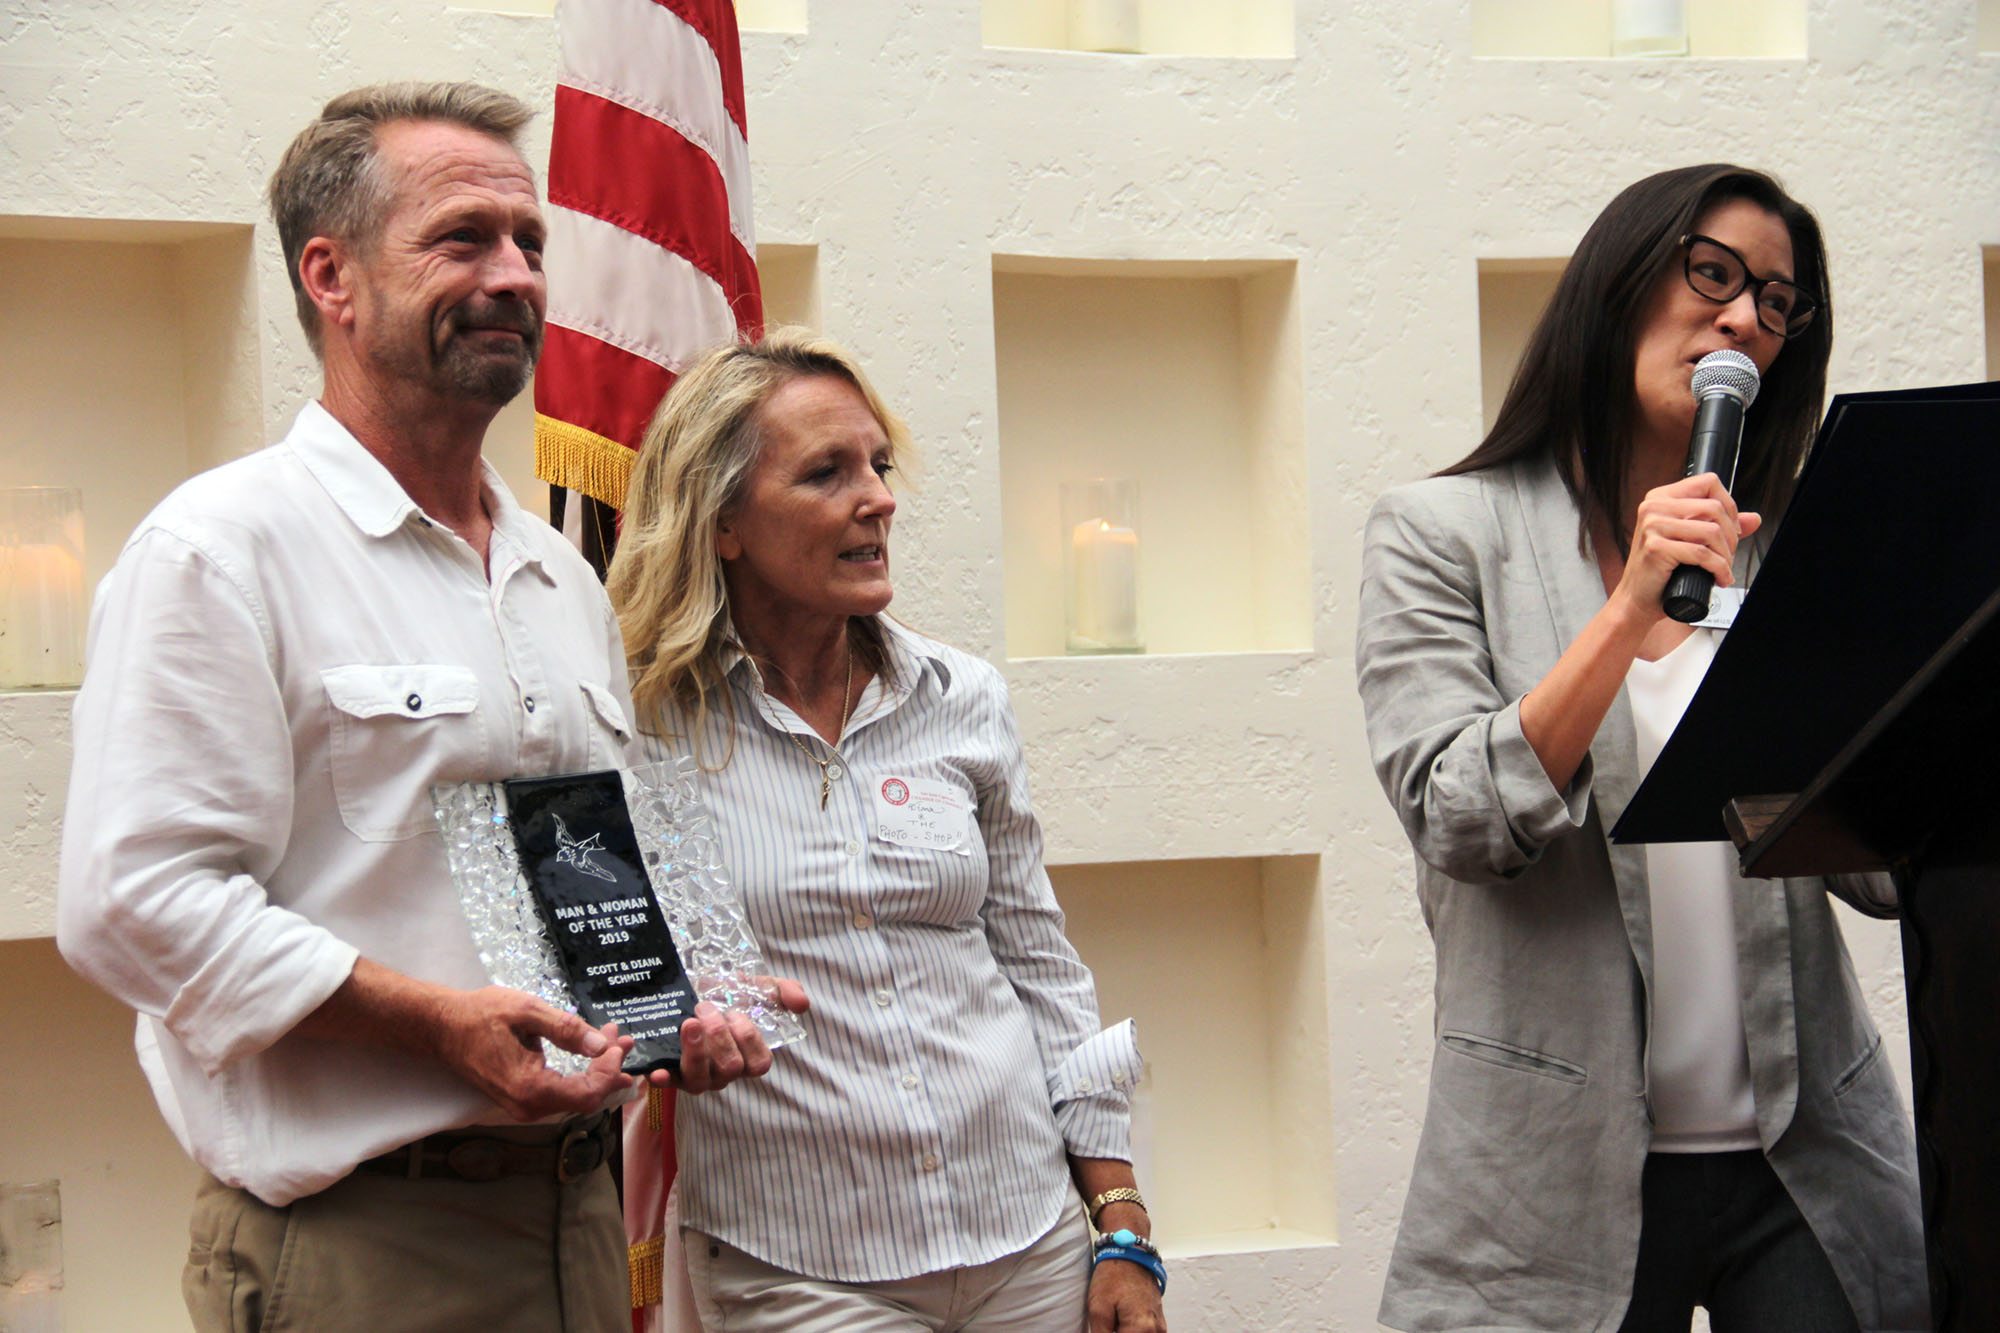 Representing Congressman Mike Levin's office, Cindy Gitter (far right) presents the San Juan Capistrano Chamber of Commerce's Man and Woman of the Year Award to Scott and Diana Schmitt during the Annual Installation and Awards Banquet on Thursday, July 11. Photo Shawn Raymundo